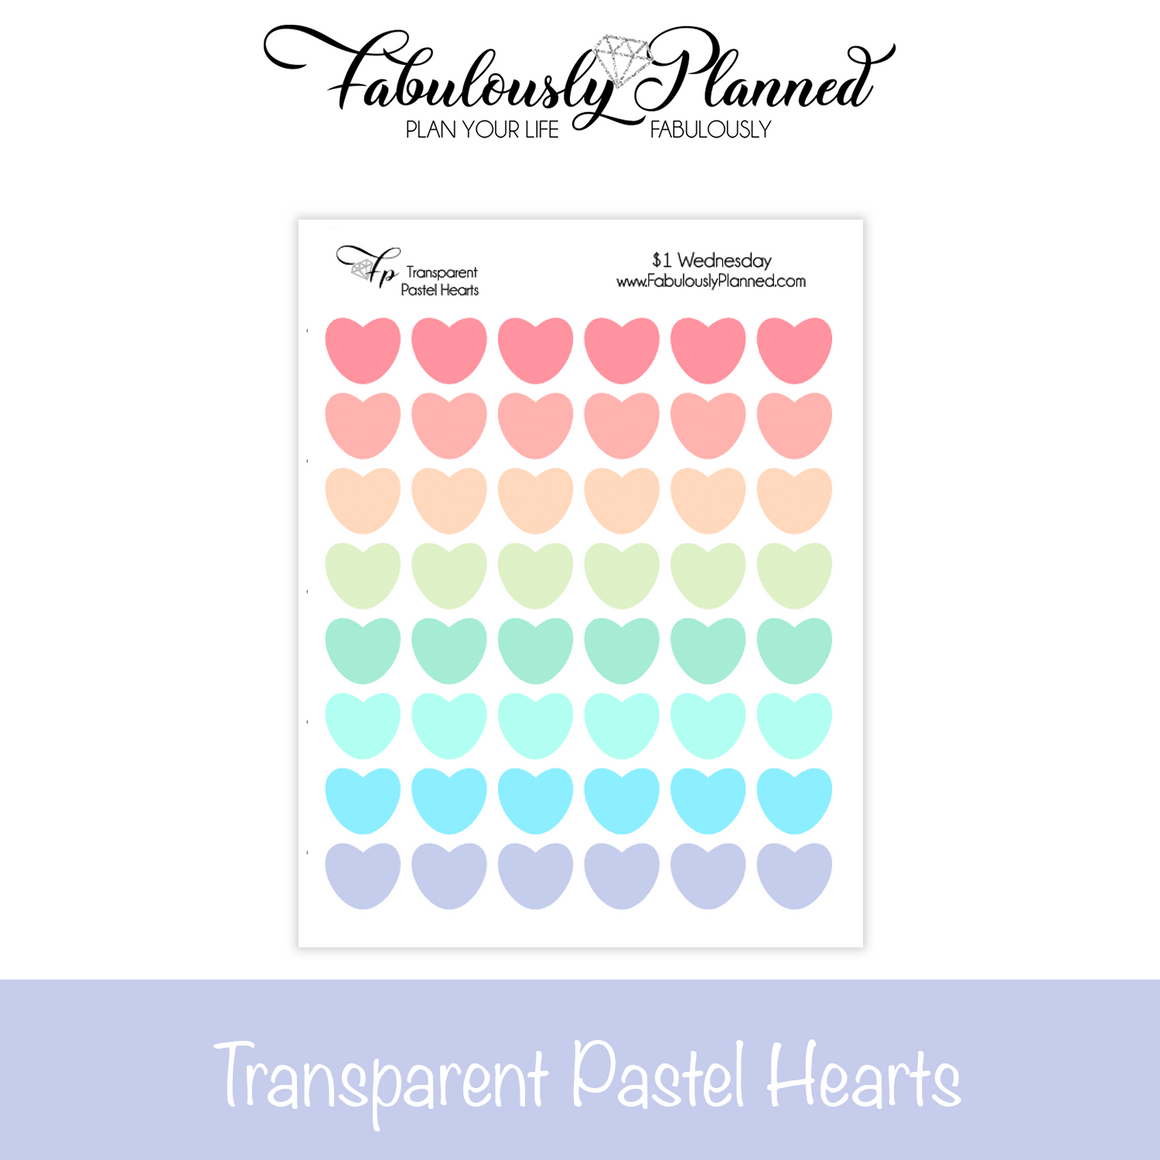 Transparent Pastel Hearts Stickers